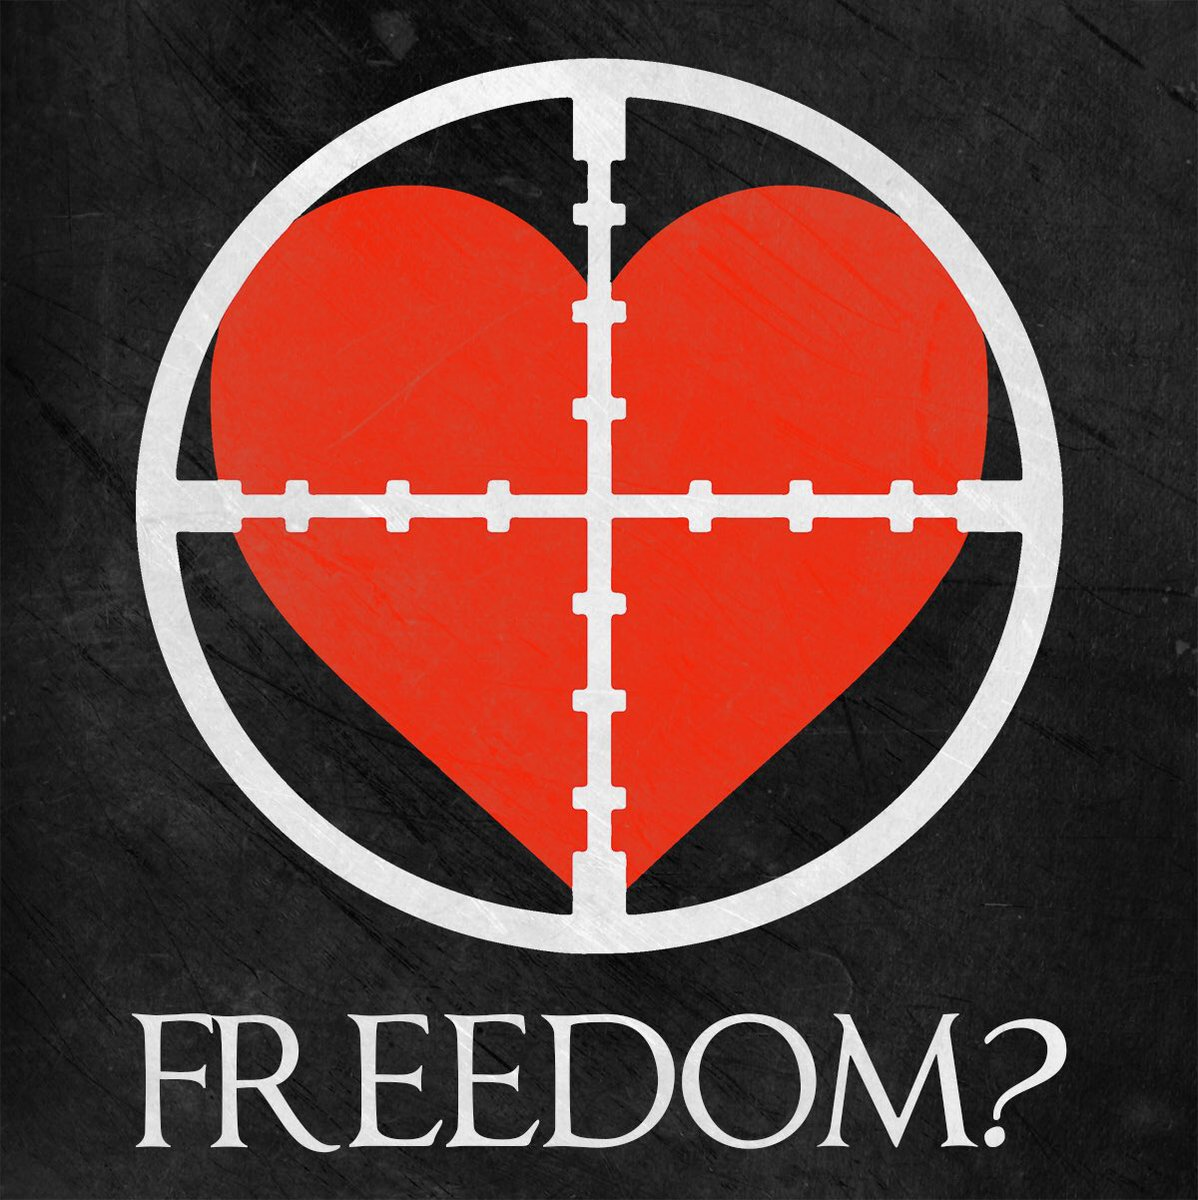 WHAT DOES FREEDOM MEAN TO YOU? Send us a video of you answering that question and you may find yourself transported into #TheAtlasUnderground. Email videos to tommorellofreedom@gmail.com